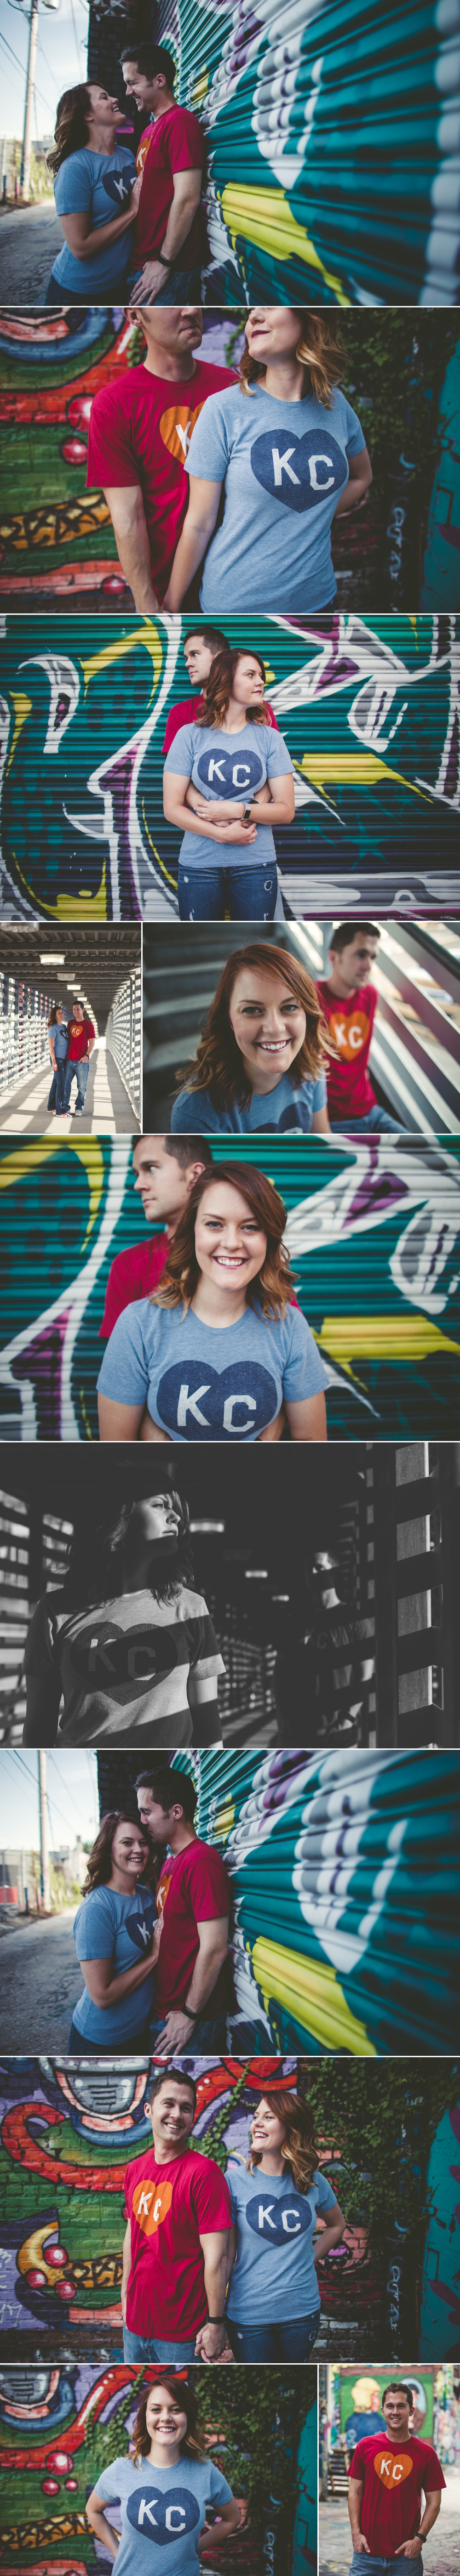 jason_domingues_photography_best_kansas_city_wedding_photographer_kc_weddings_engagement_session_downtown_up_down_arcade_art_alley_0001